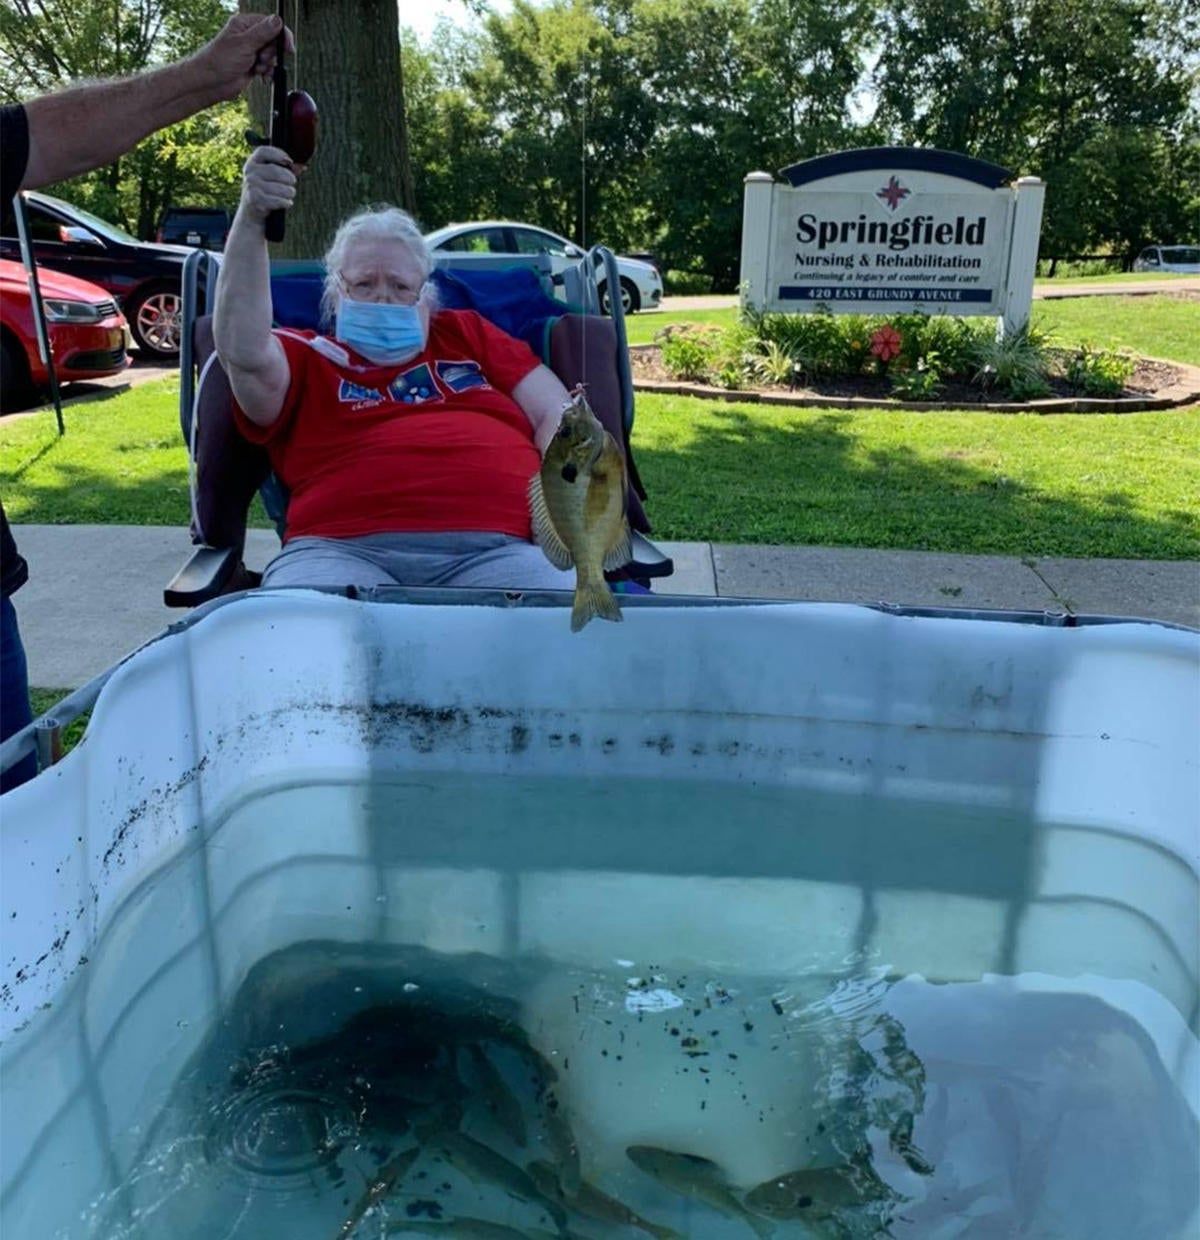 nursing-home-fishing-4.jpg